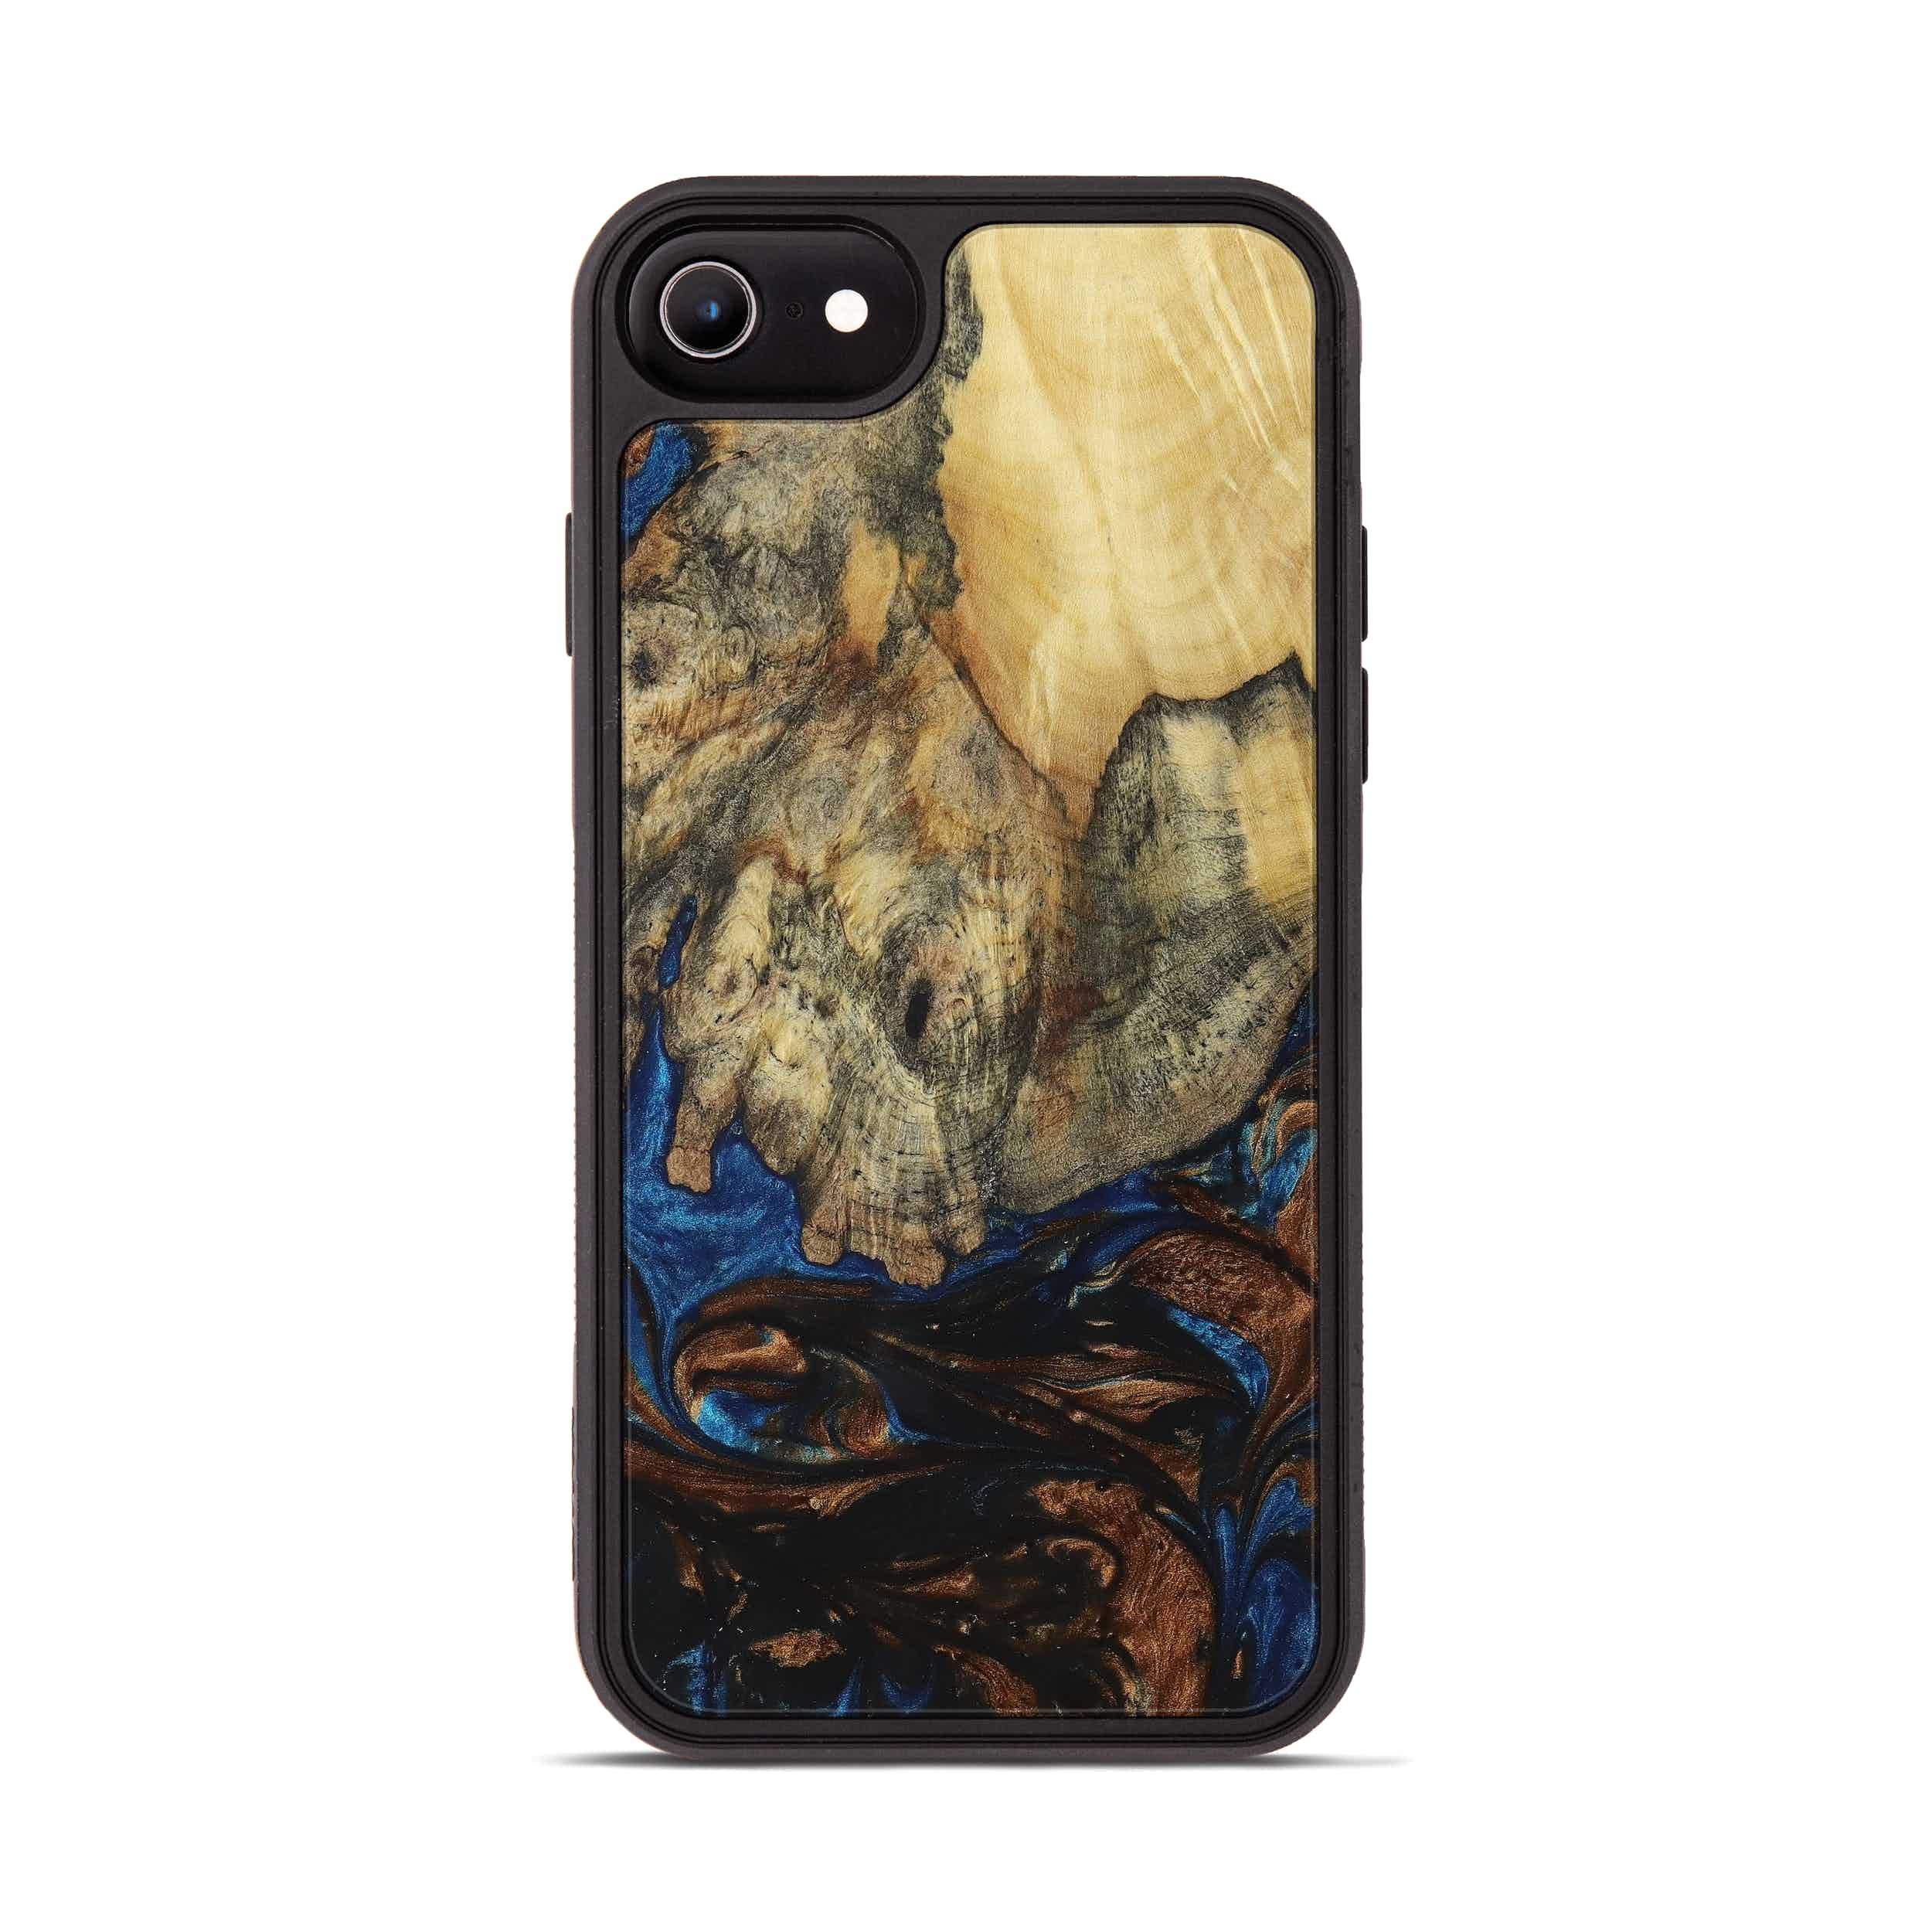 iPhone 8 Wood+Resin Phone Case - Rob (Teal & Gold, 394595)